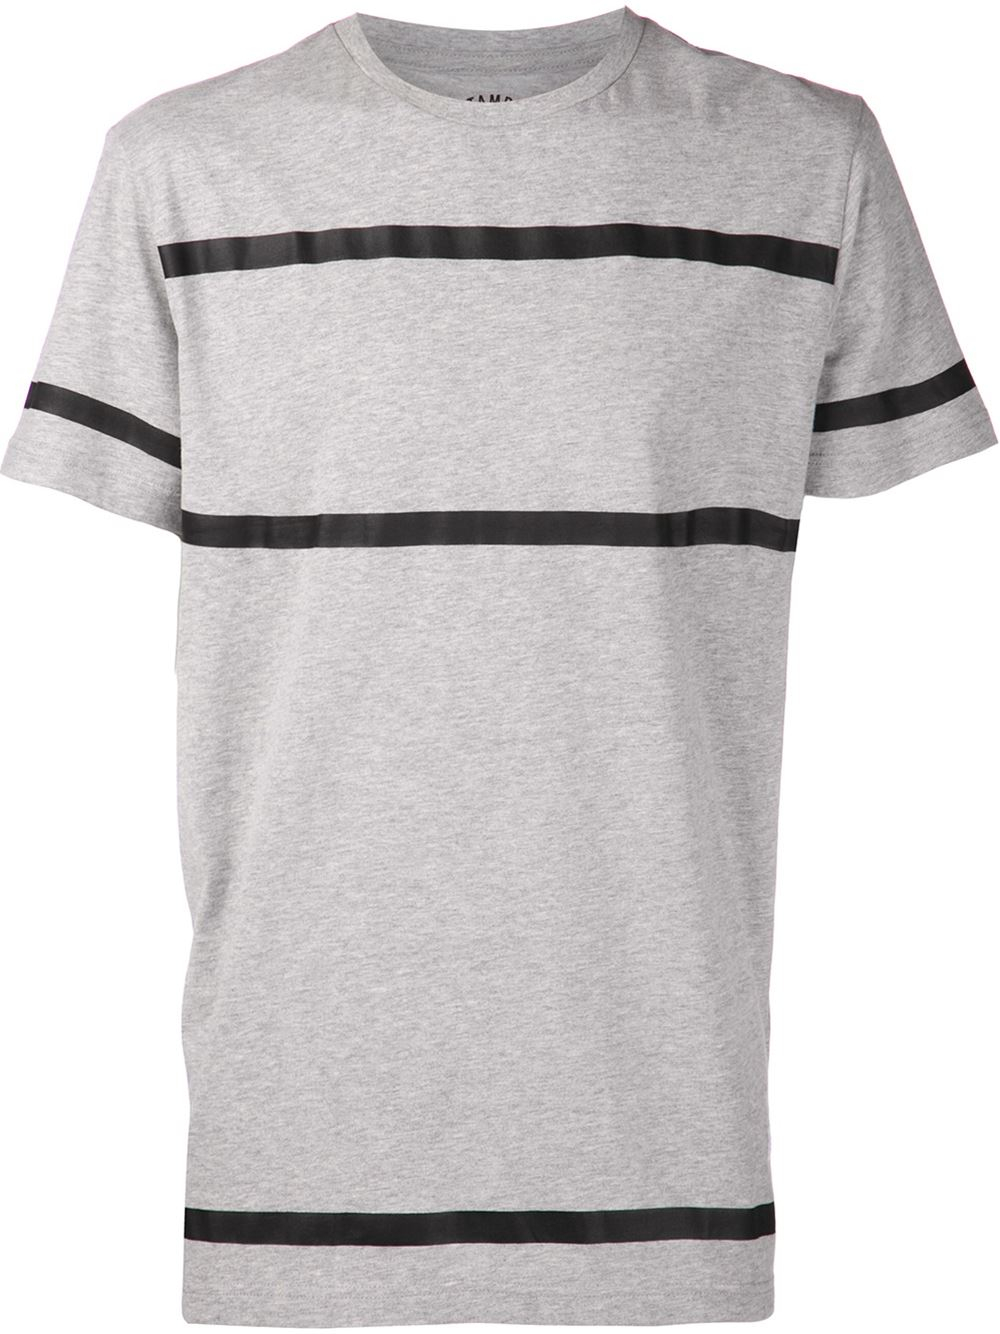 Lyst stampd striped t shirt in gray for men for Grey striped t shirt